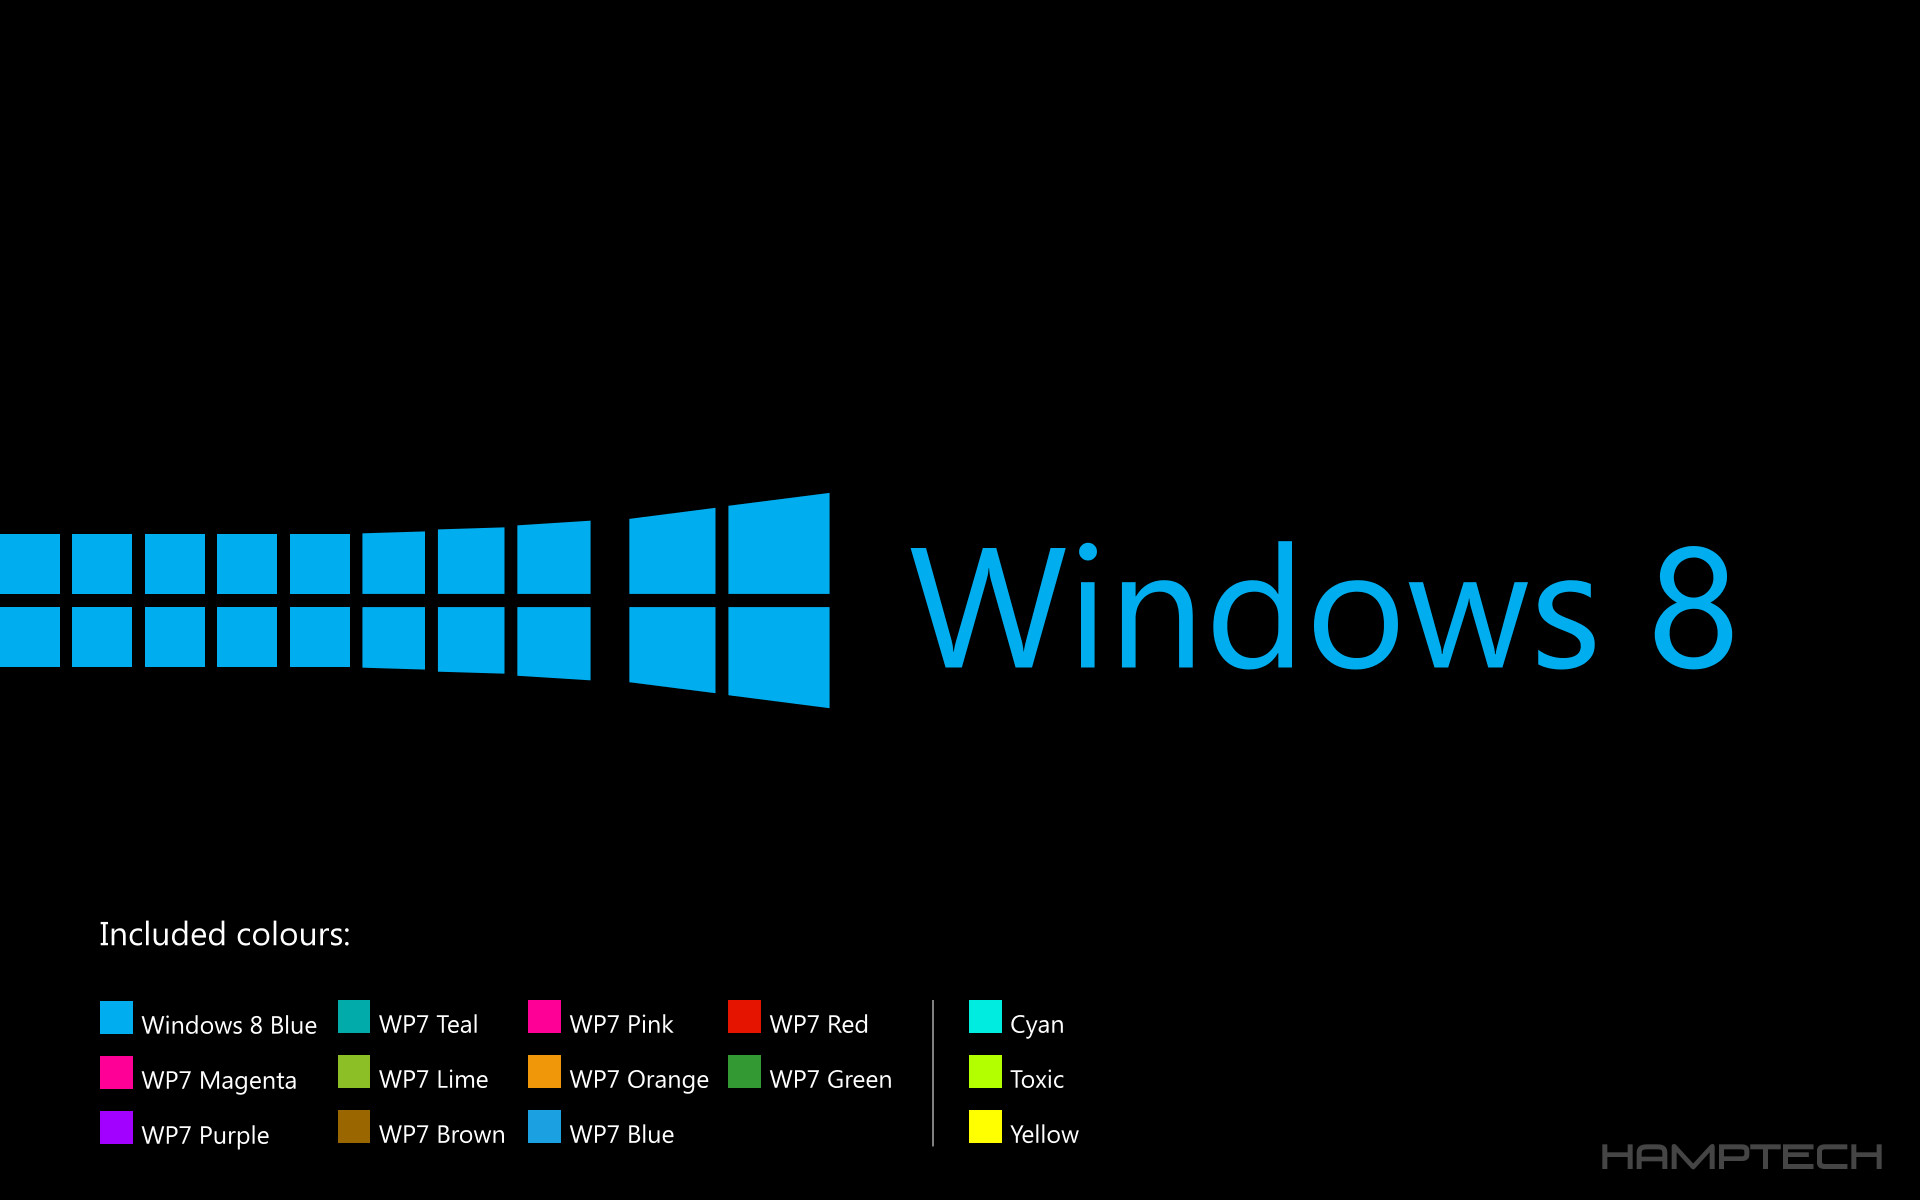 1920x1200 Windows 8 Lockscreen/Wallpaperpack (BlackEdition) by Hamptech on .